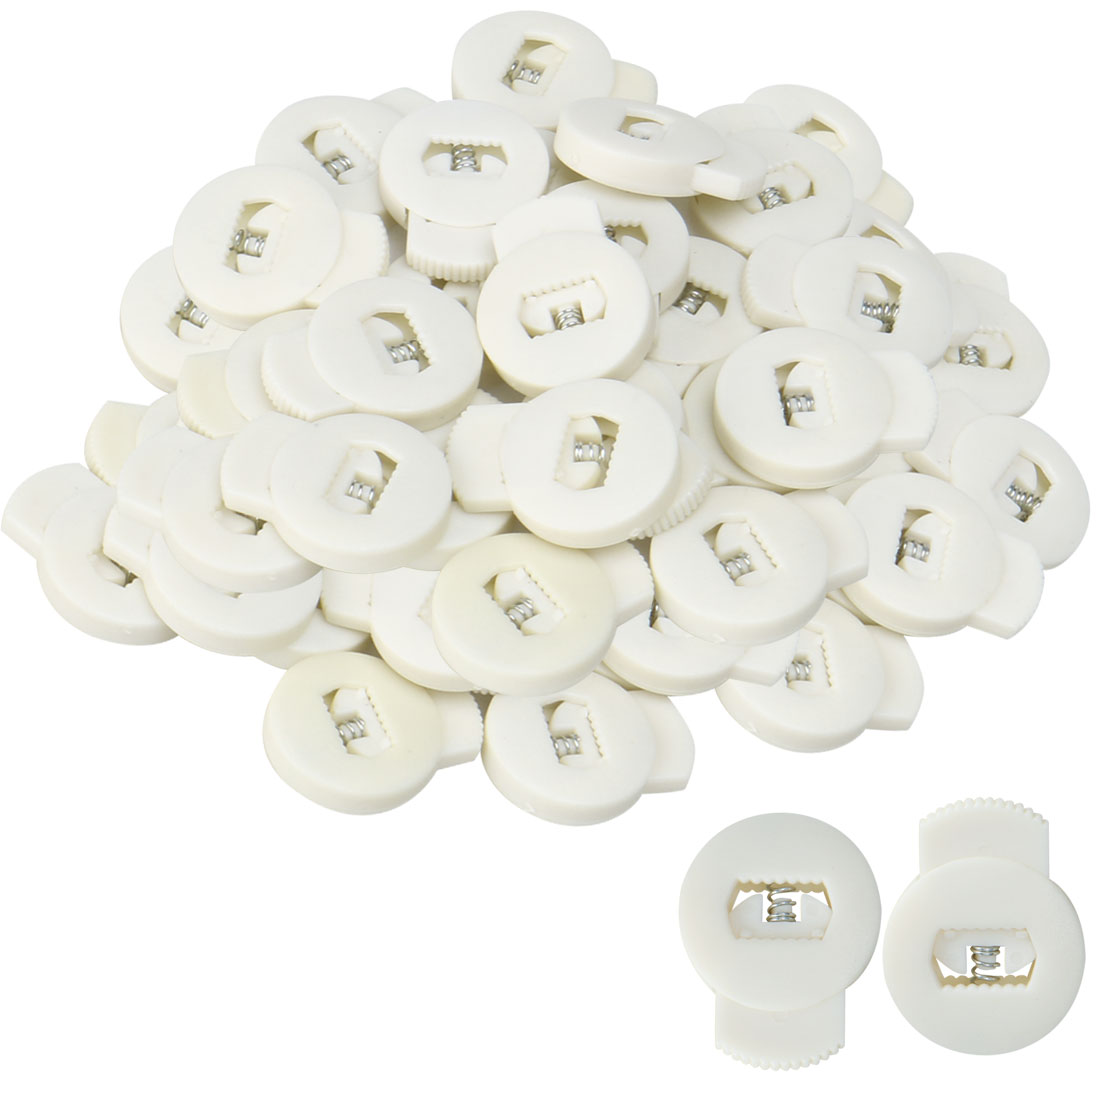 100pcs Plastic Cord Lock Stoppers Ends Spring Toggle Fastener Organizers, White